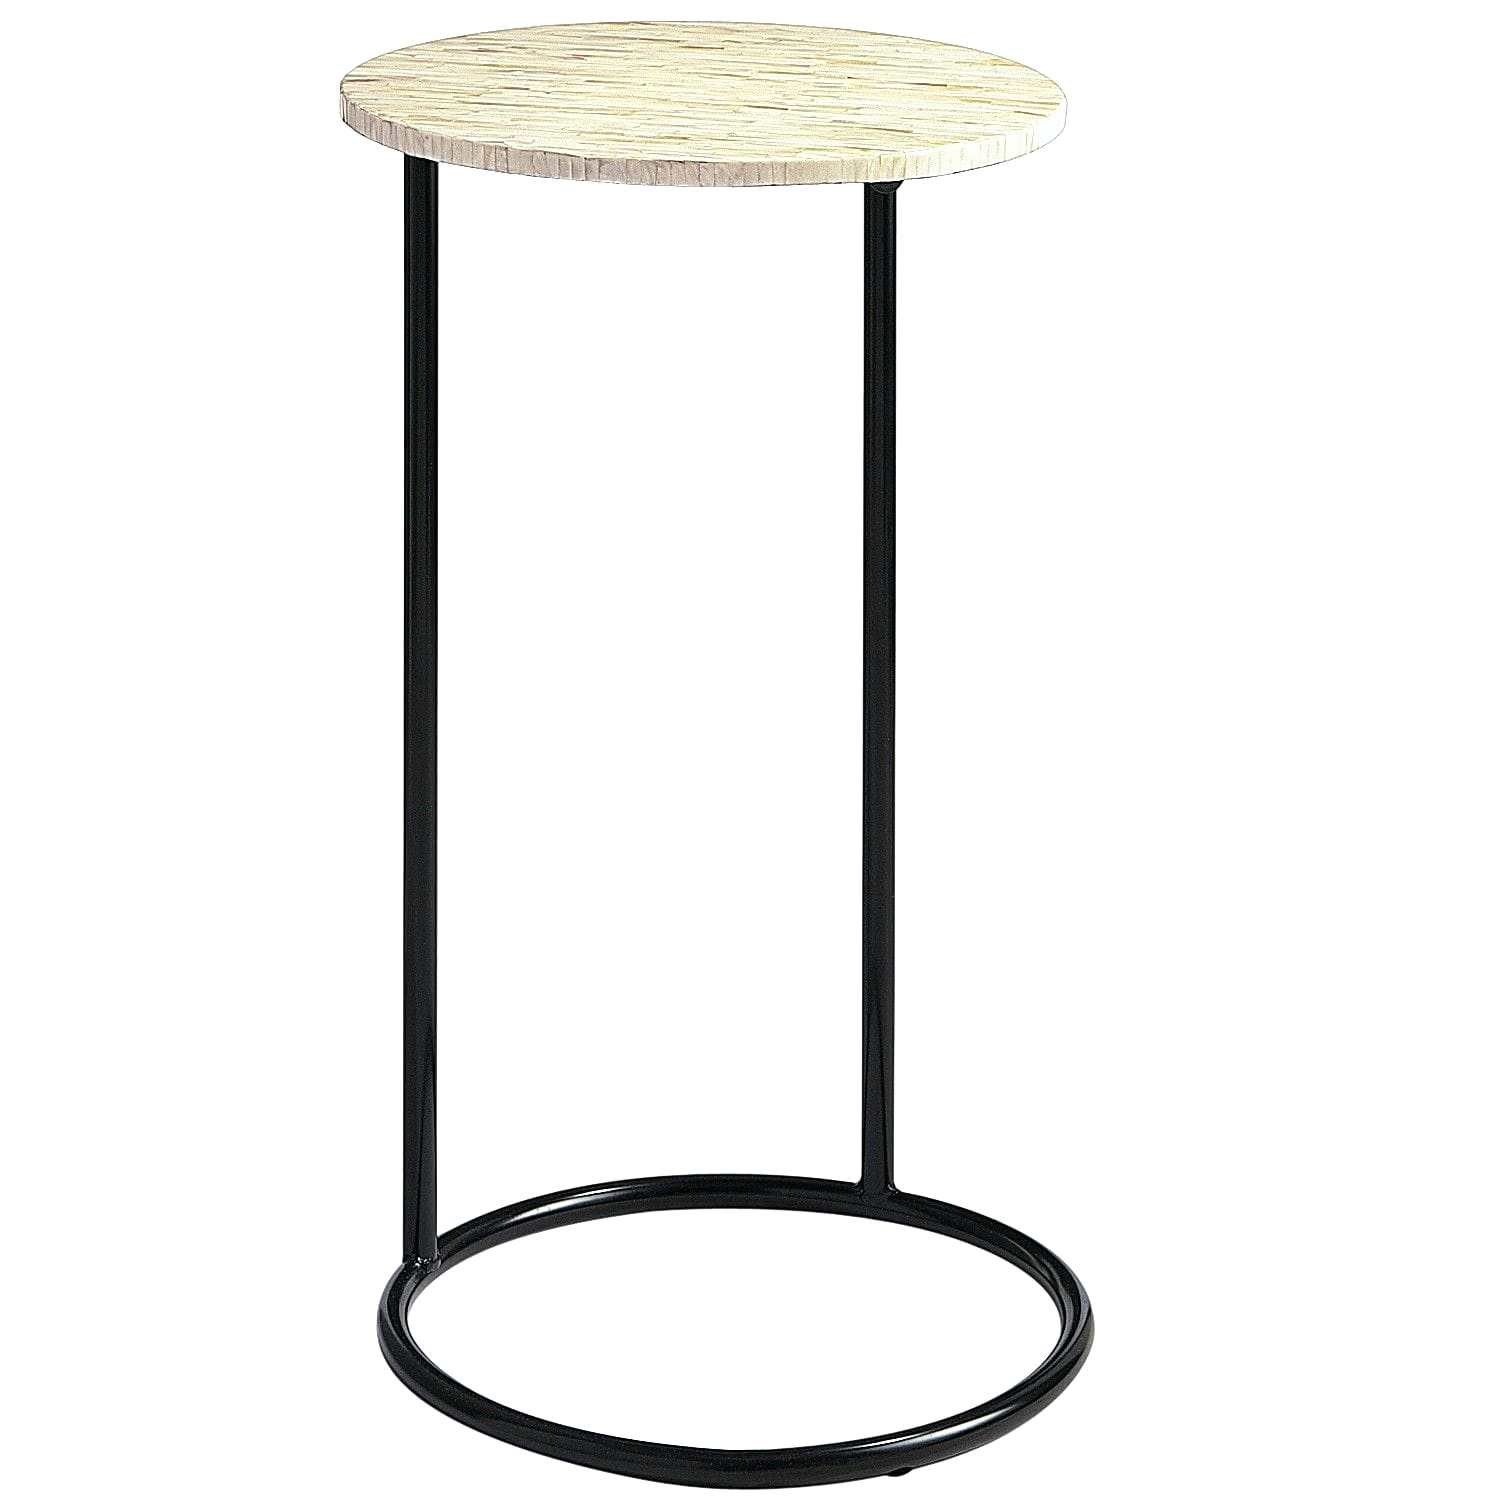 pier one table fascinating with drawer end crystal lamp accent lamps tablecloth beach bunnings outdoor sun lounges that use batteries round glass and wood coffee fancy bedside